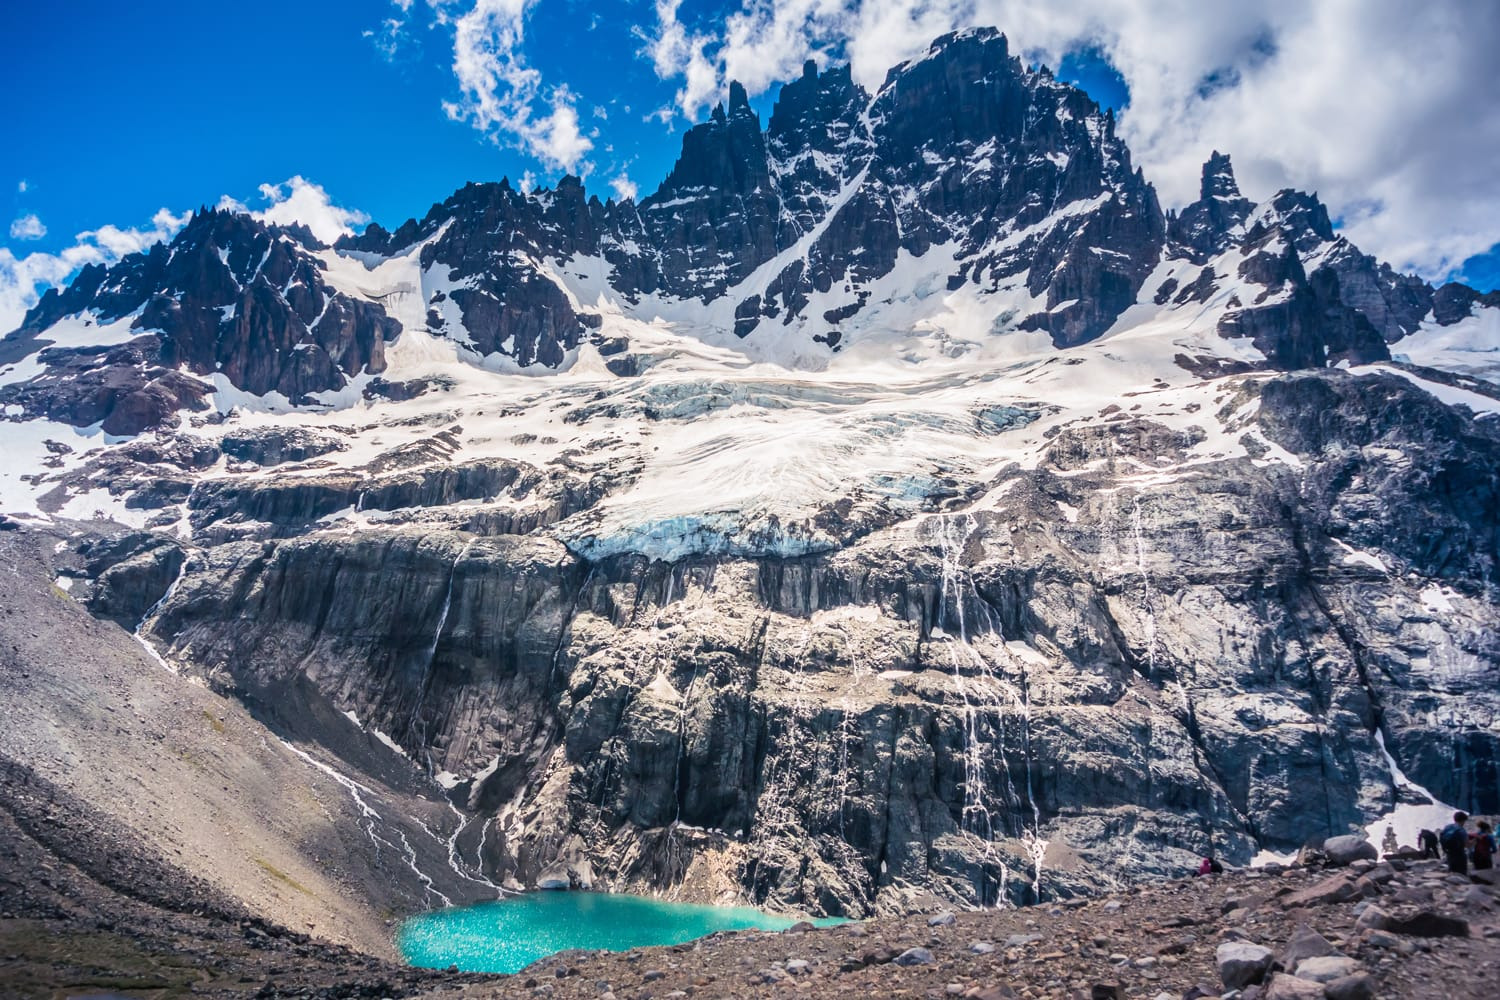 Cerro Castillo in Patagonia, Chile